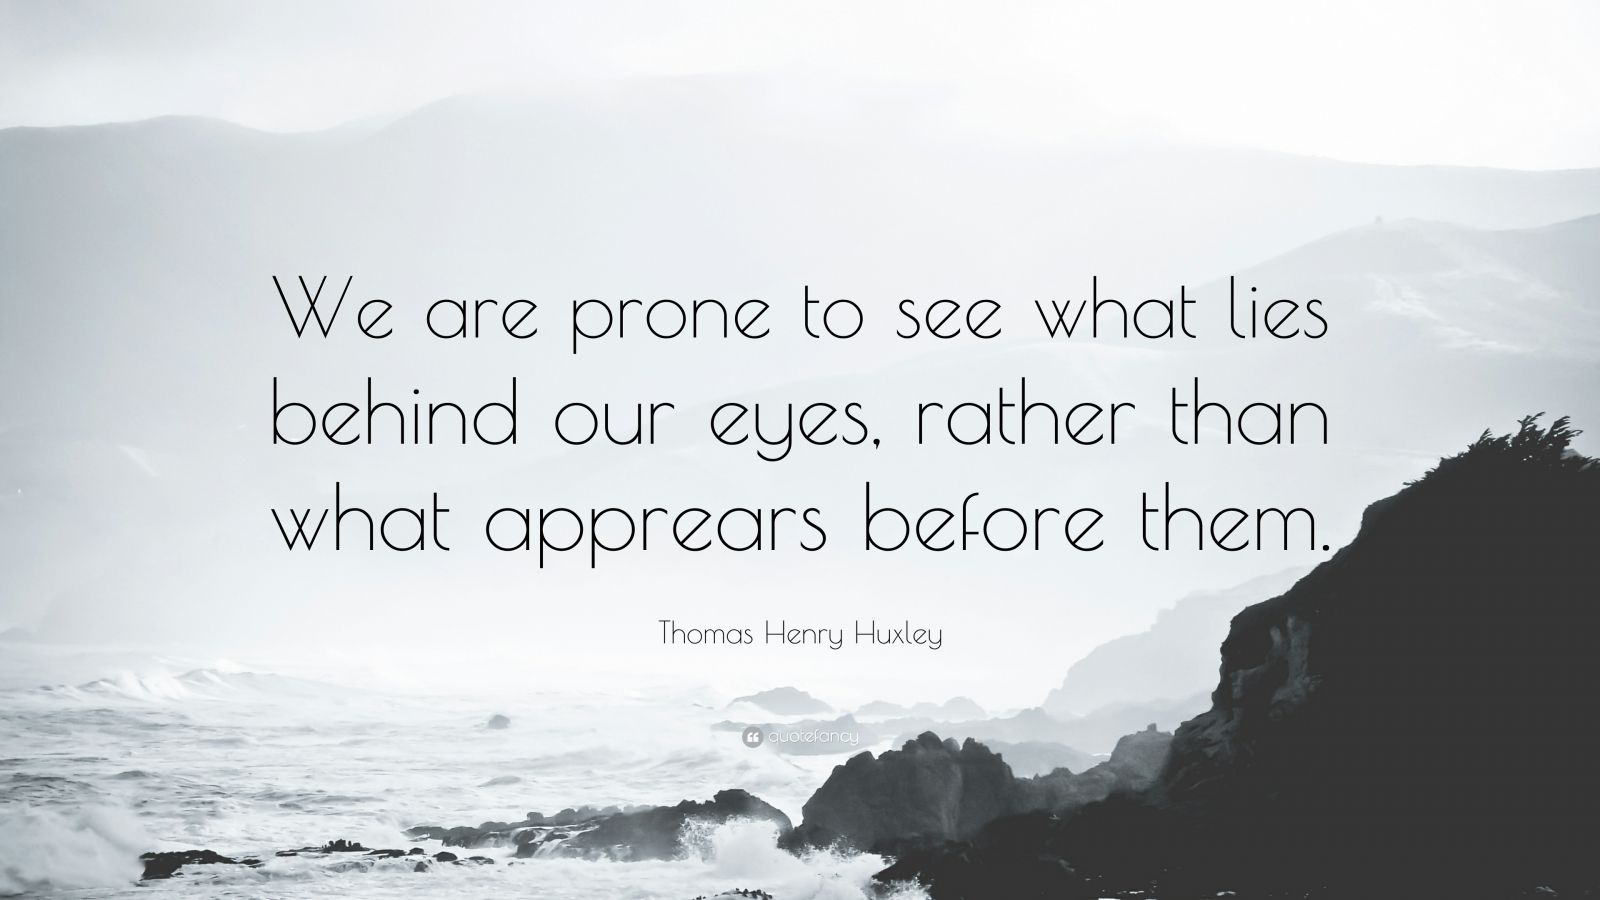 """Thomas Henry Huxley Quote: """"We are prone to see what lies behind our eyes, rather than what apprears before them."""""""